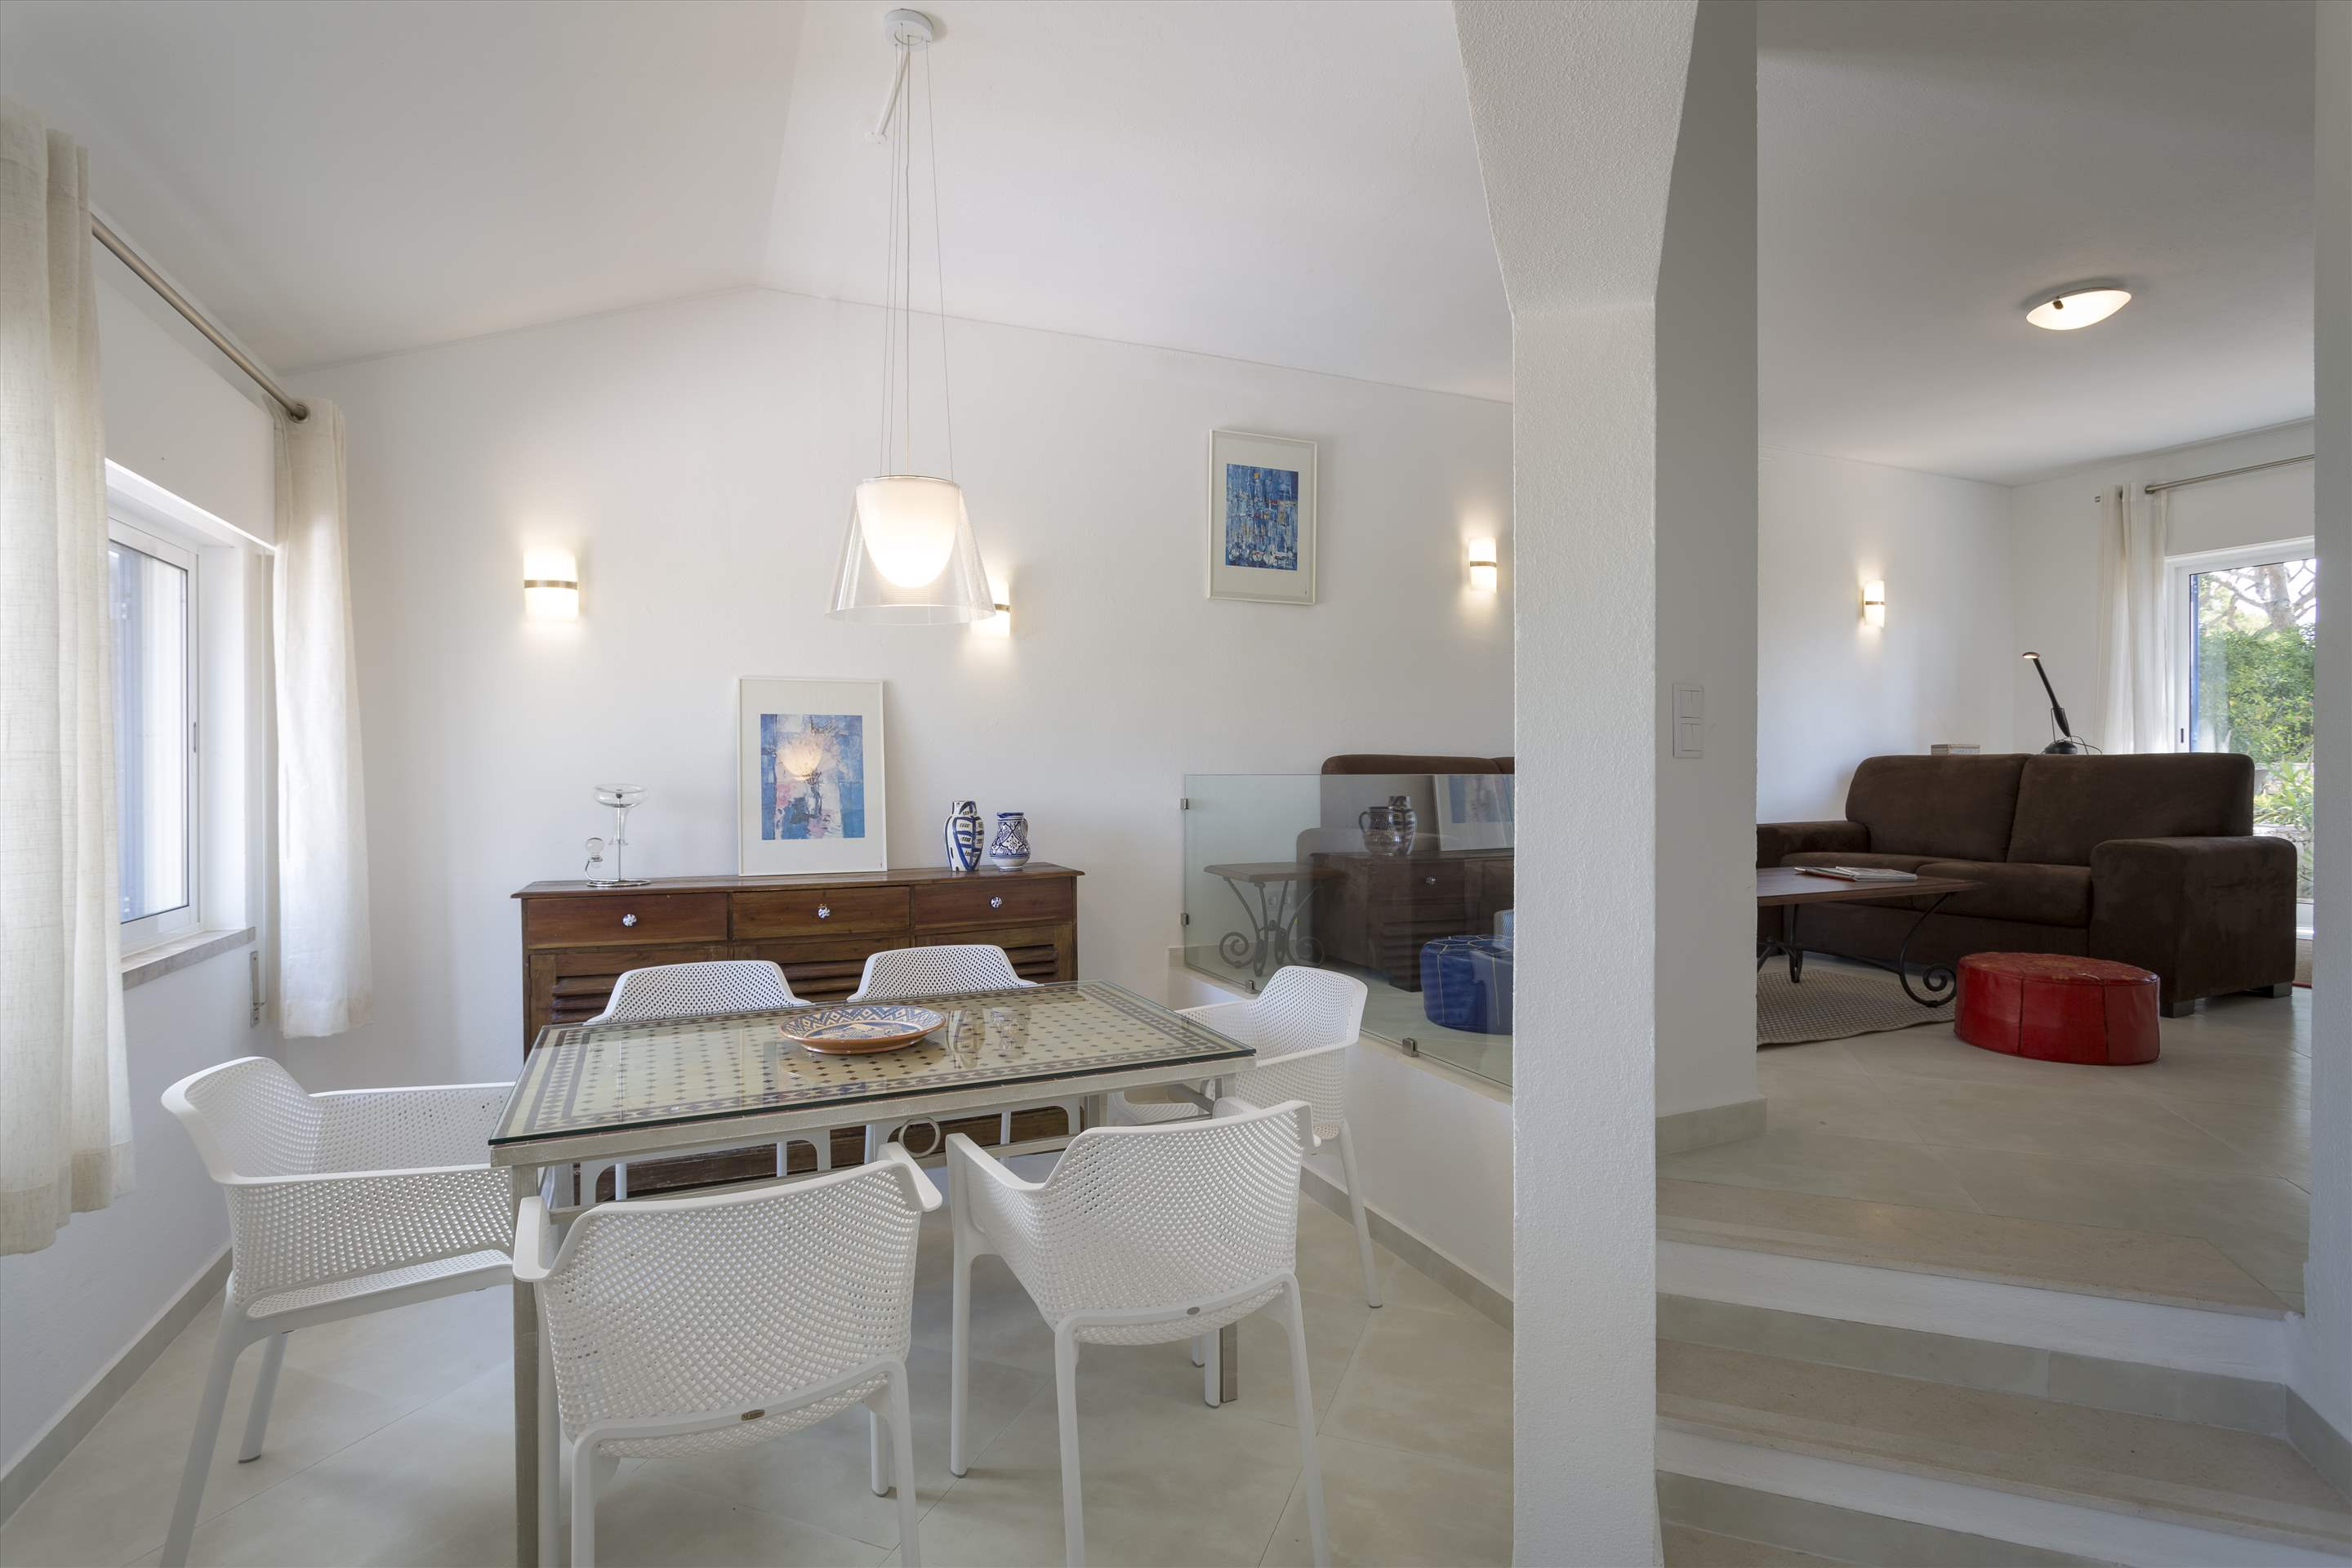 Townhouse Megan, 3 bedroom villa in Vale do Lobo, Algarve Photo #5